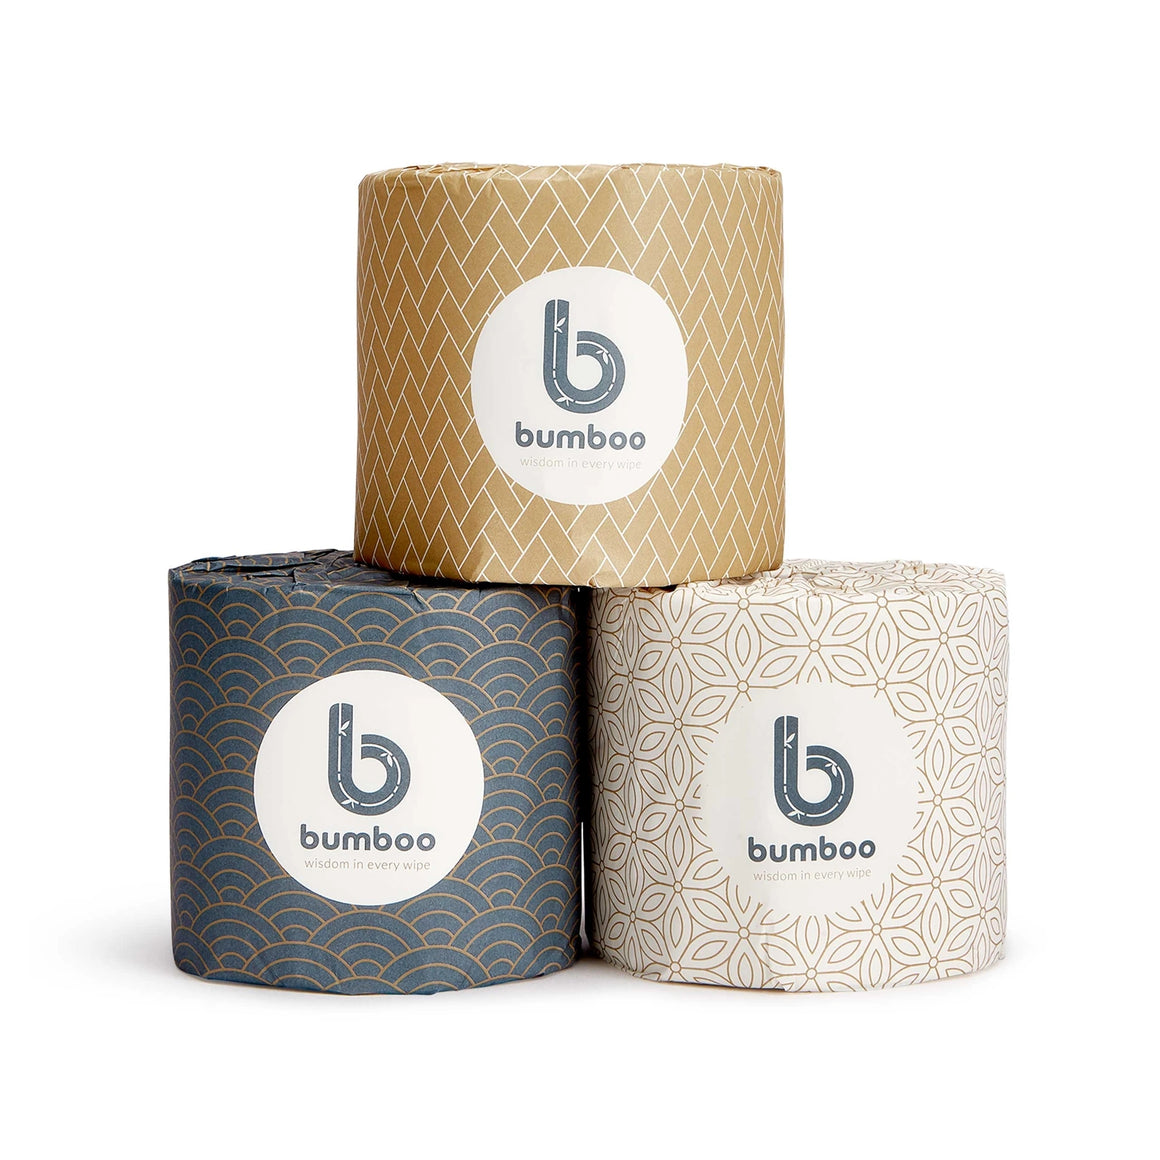 Bumboo Luxury Toilet Roll - Single Roll